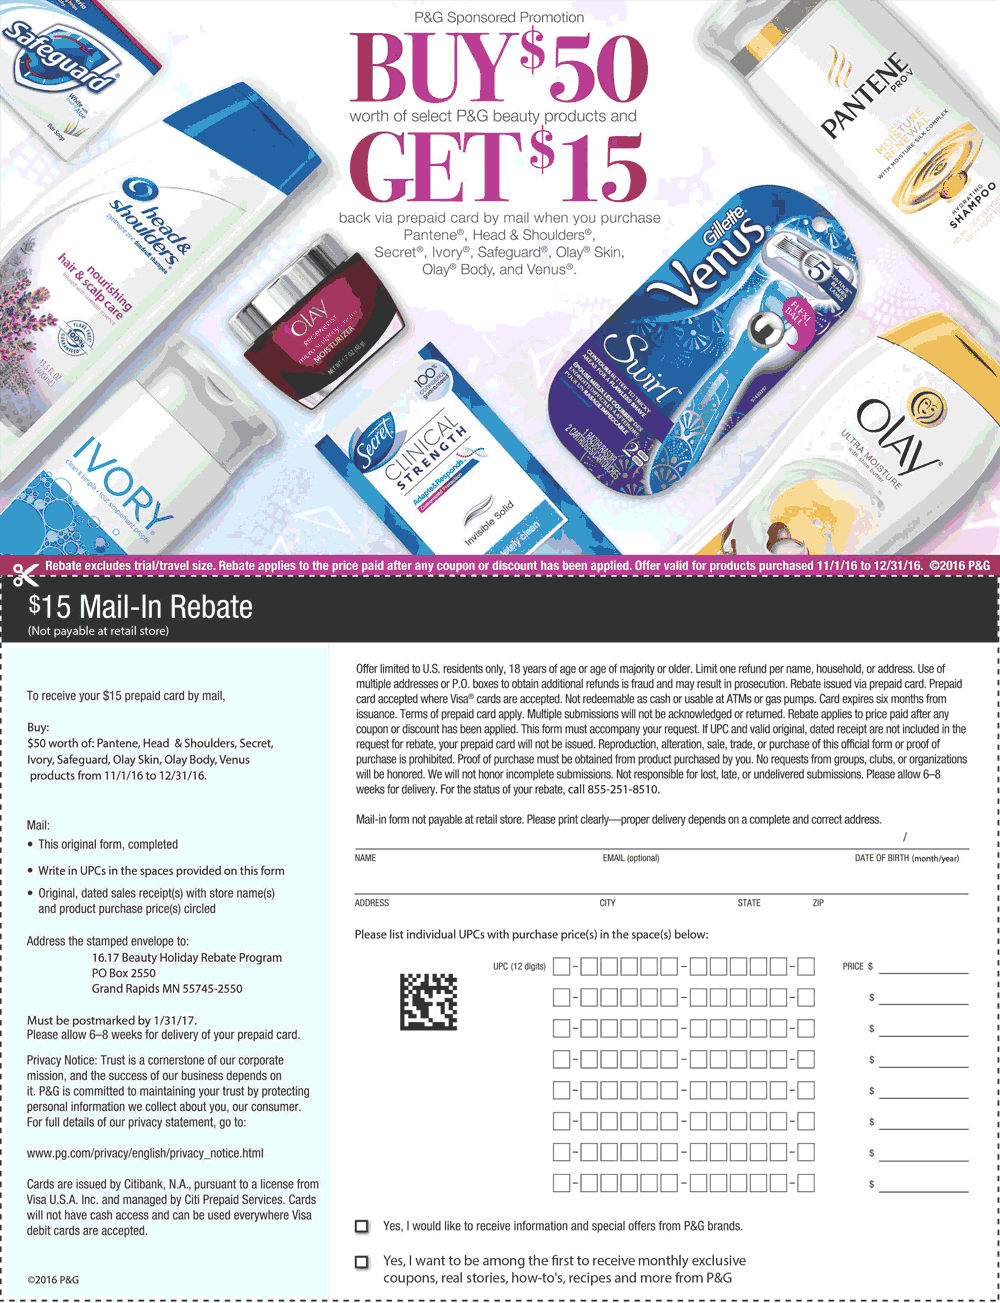 Rebate.com Promo Coupon $15 mail-in Rebate on $50 P&G products